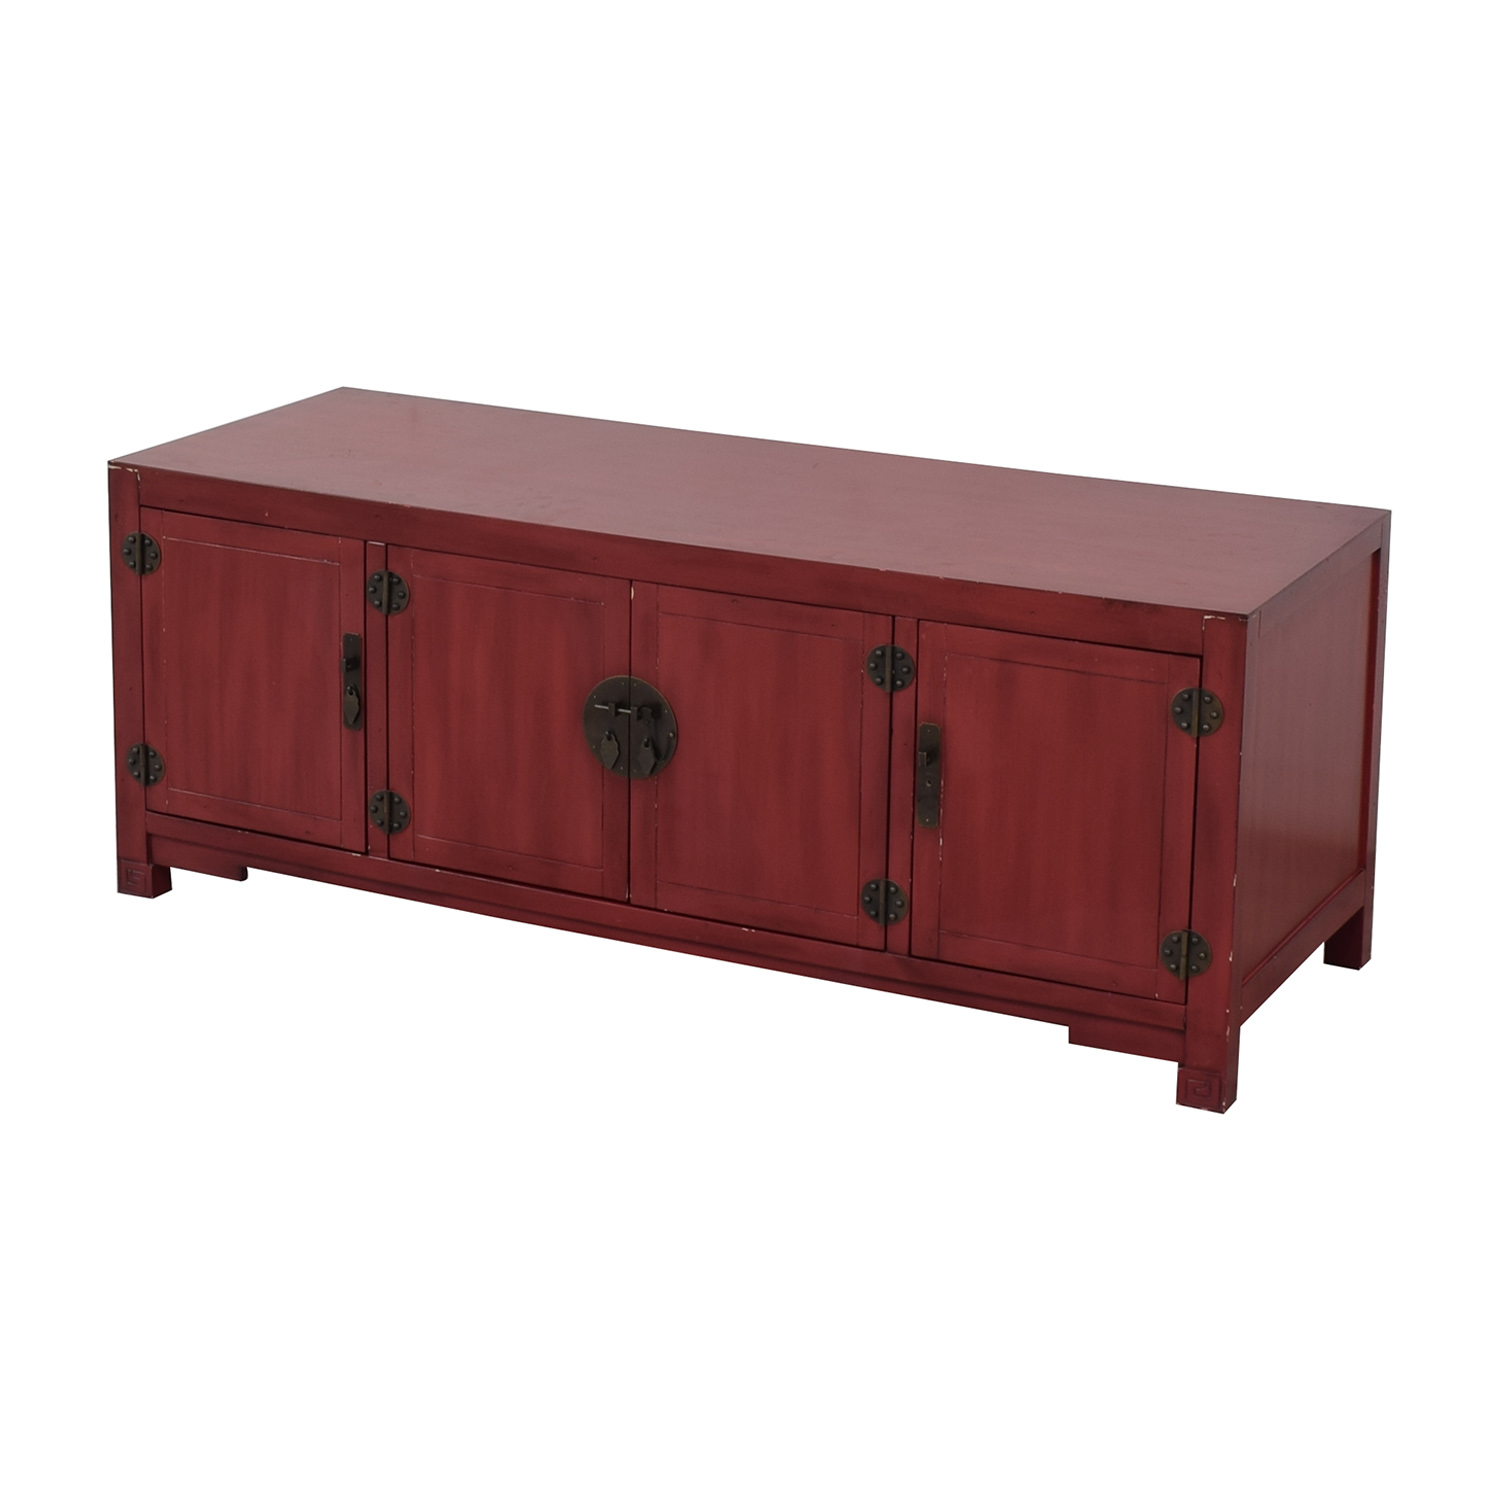 Klaussner Klaussner Red Media Unit on sale